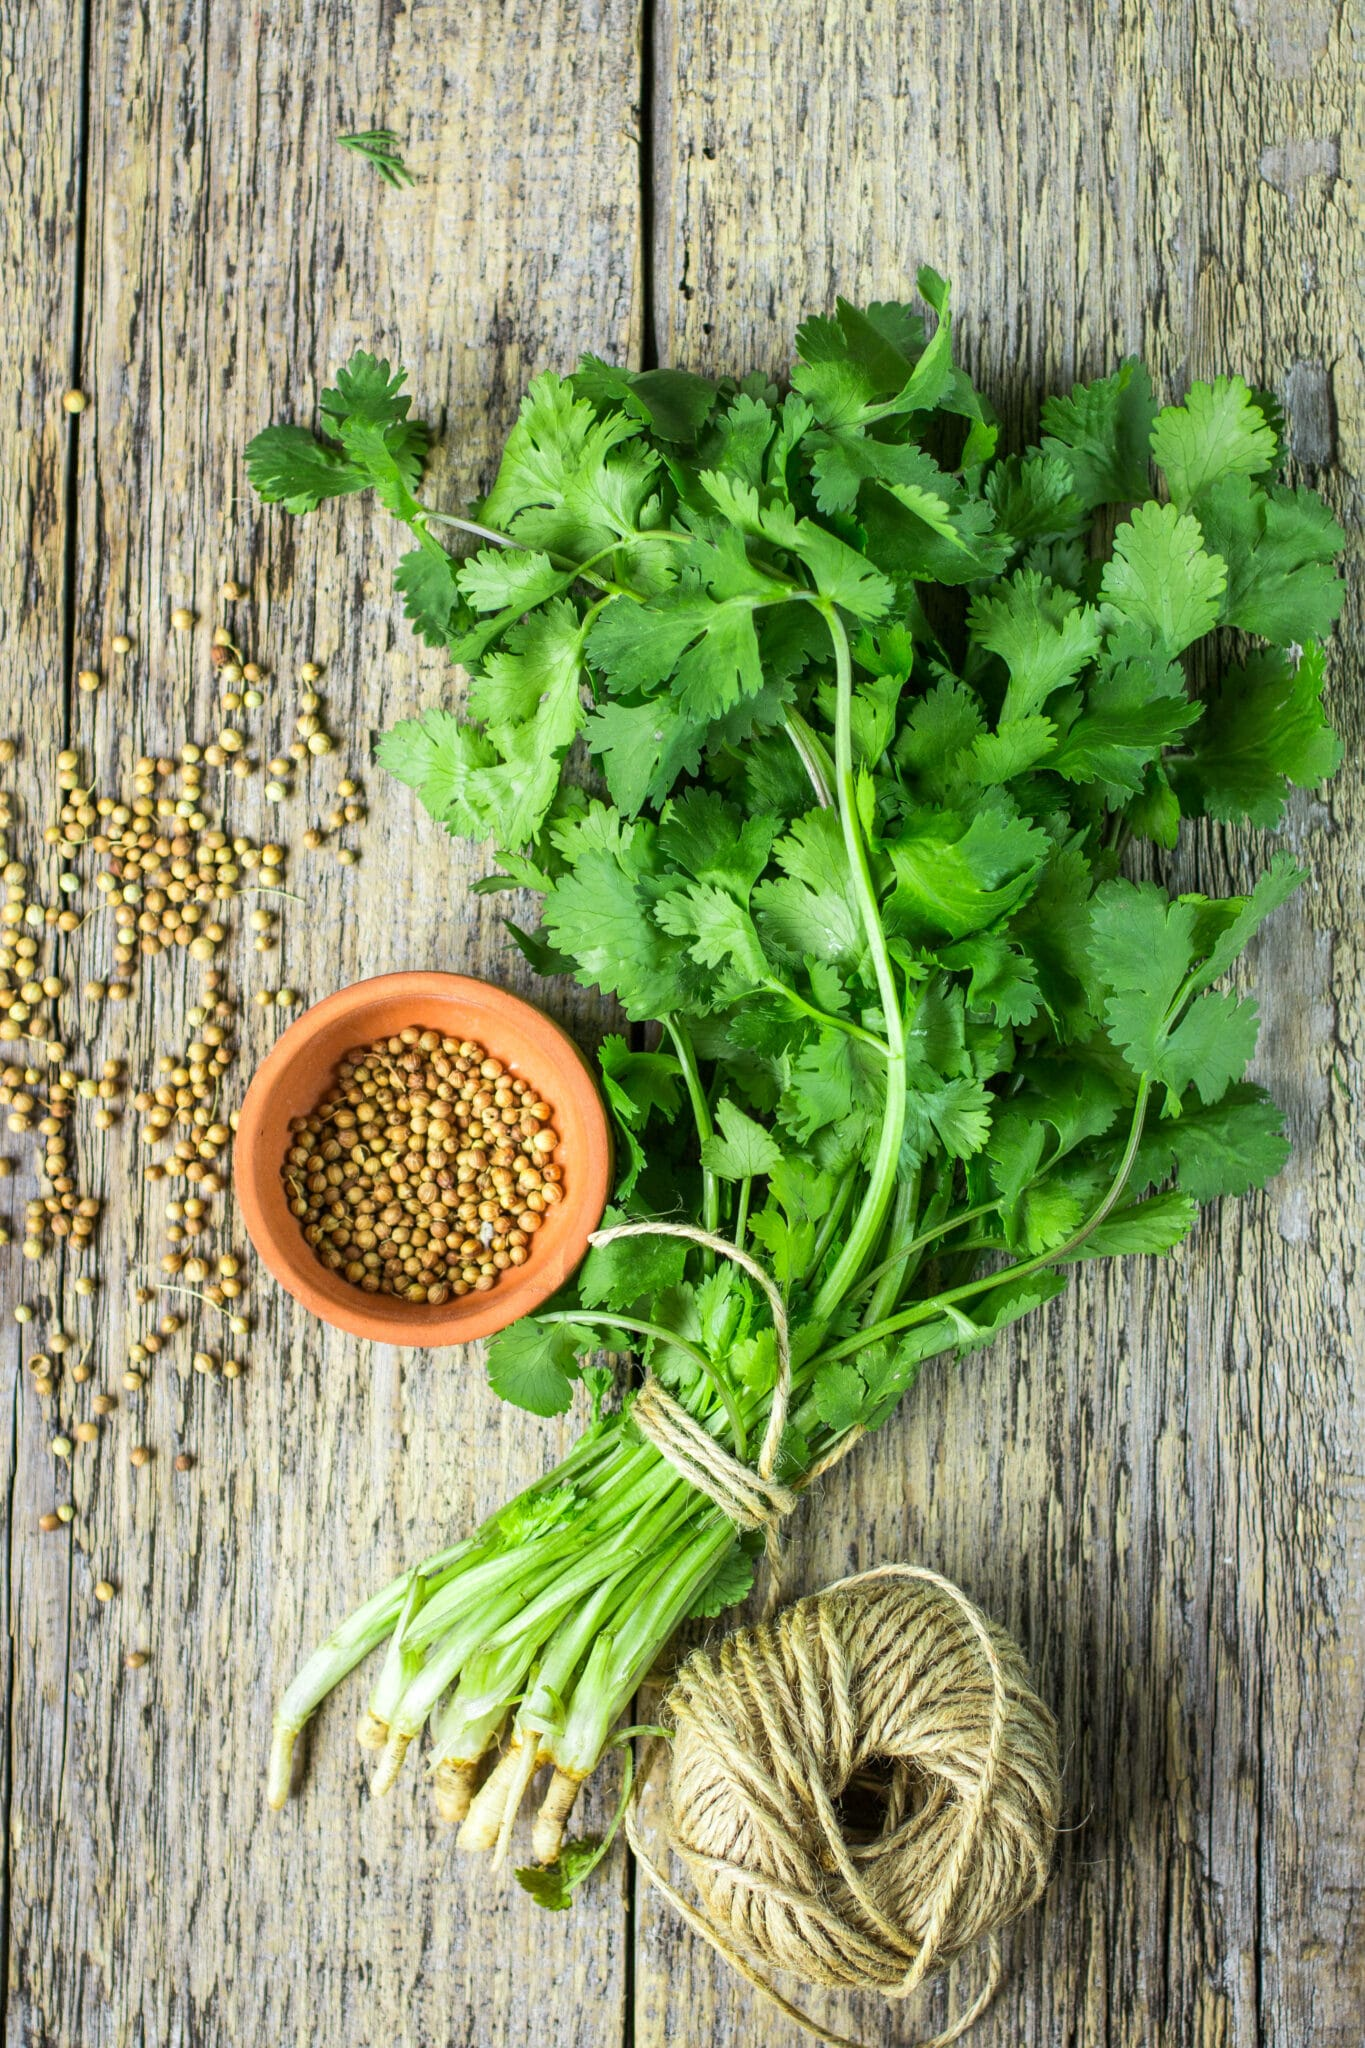 Cilantro leaves and coriander seeds on a wooden table.